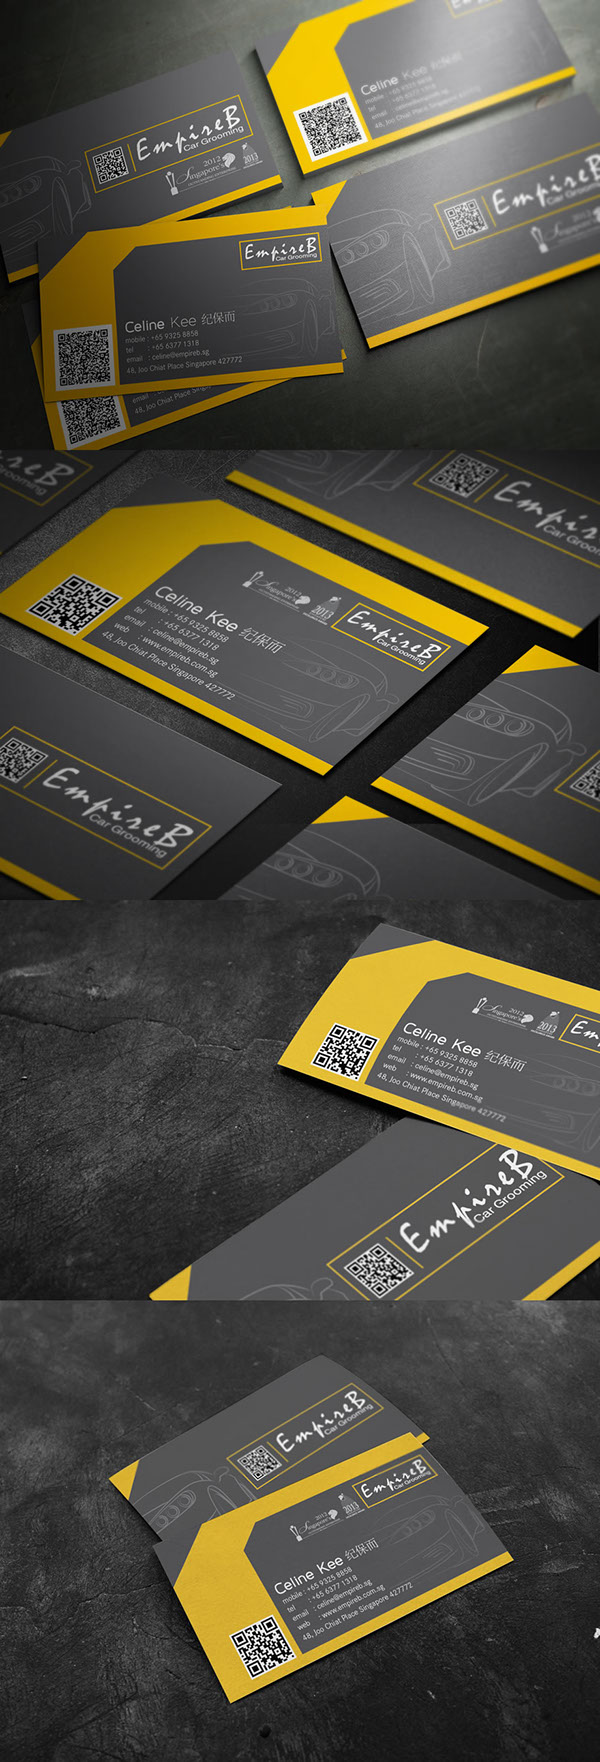 EmpireB car Grooming business card design on Behance